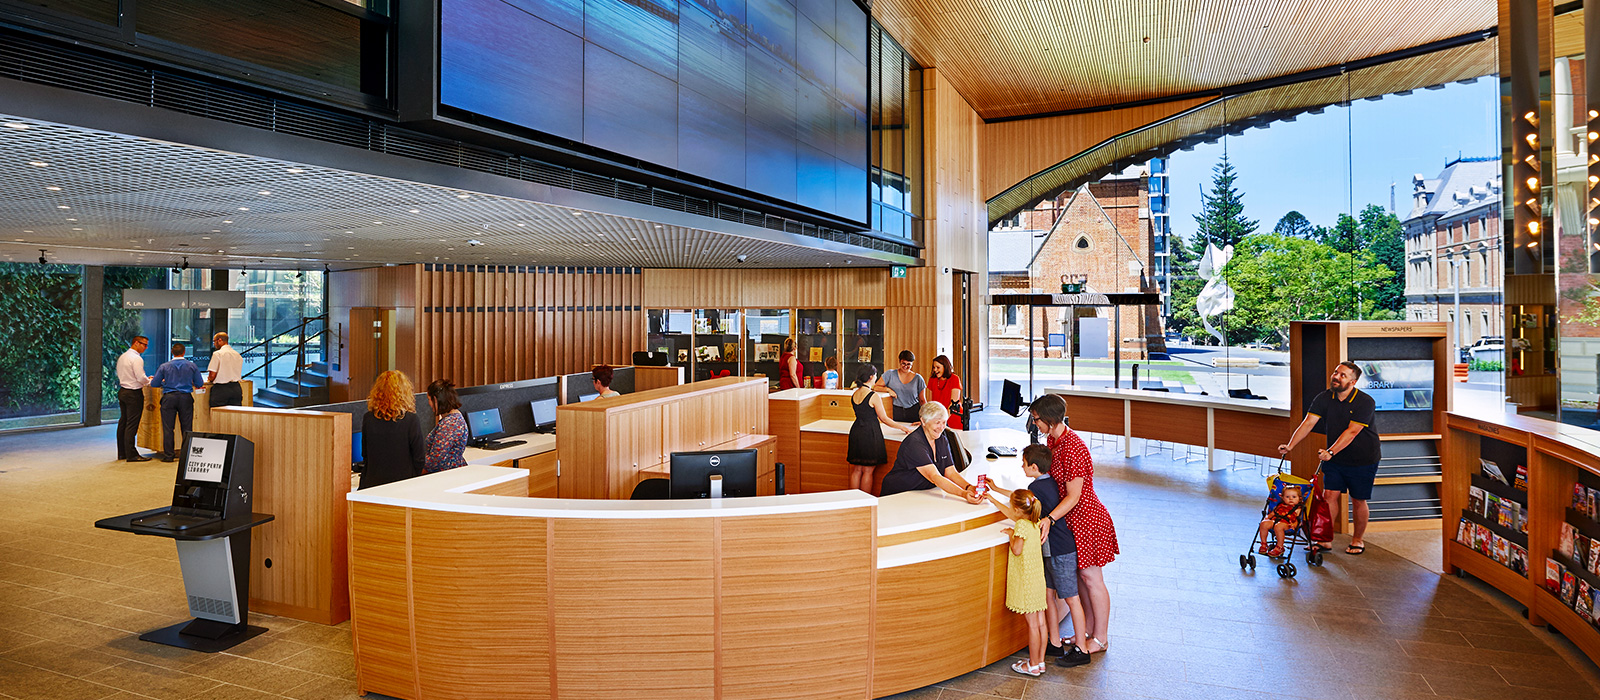 CoP library foyer